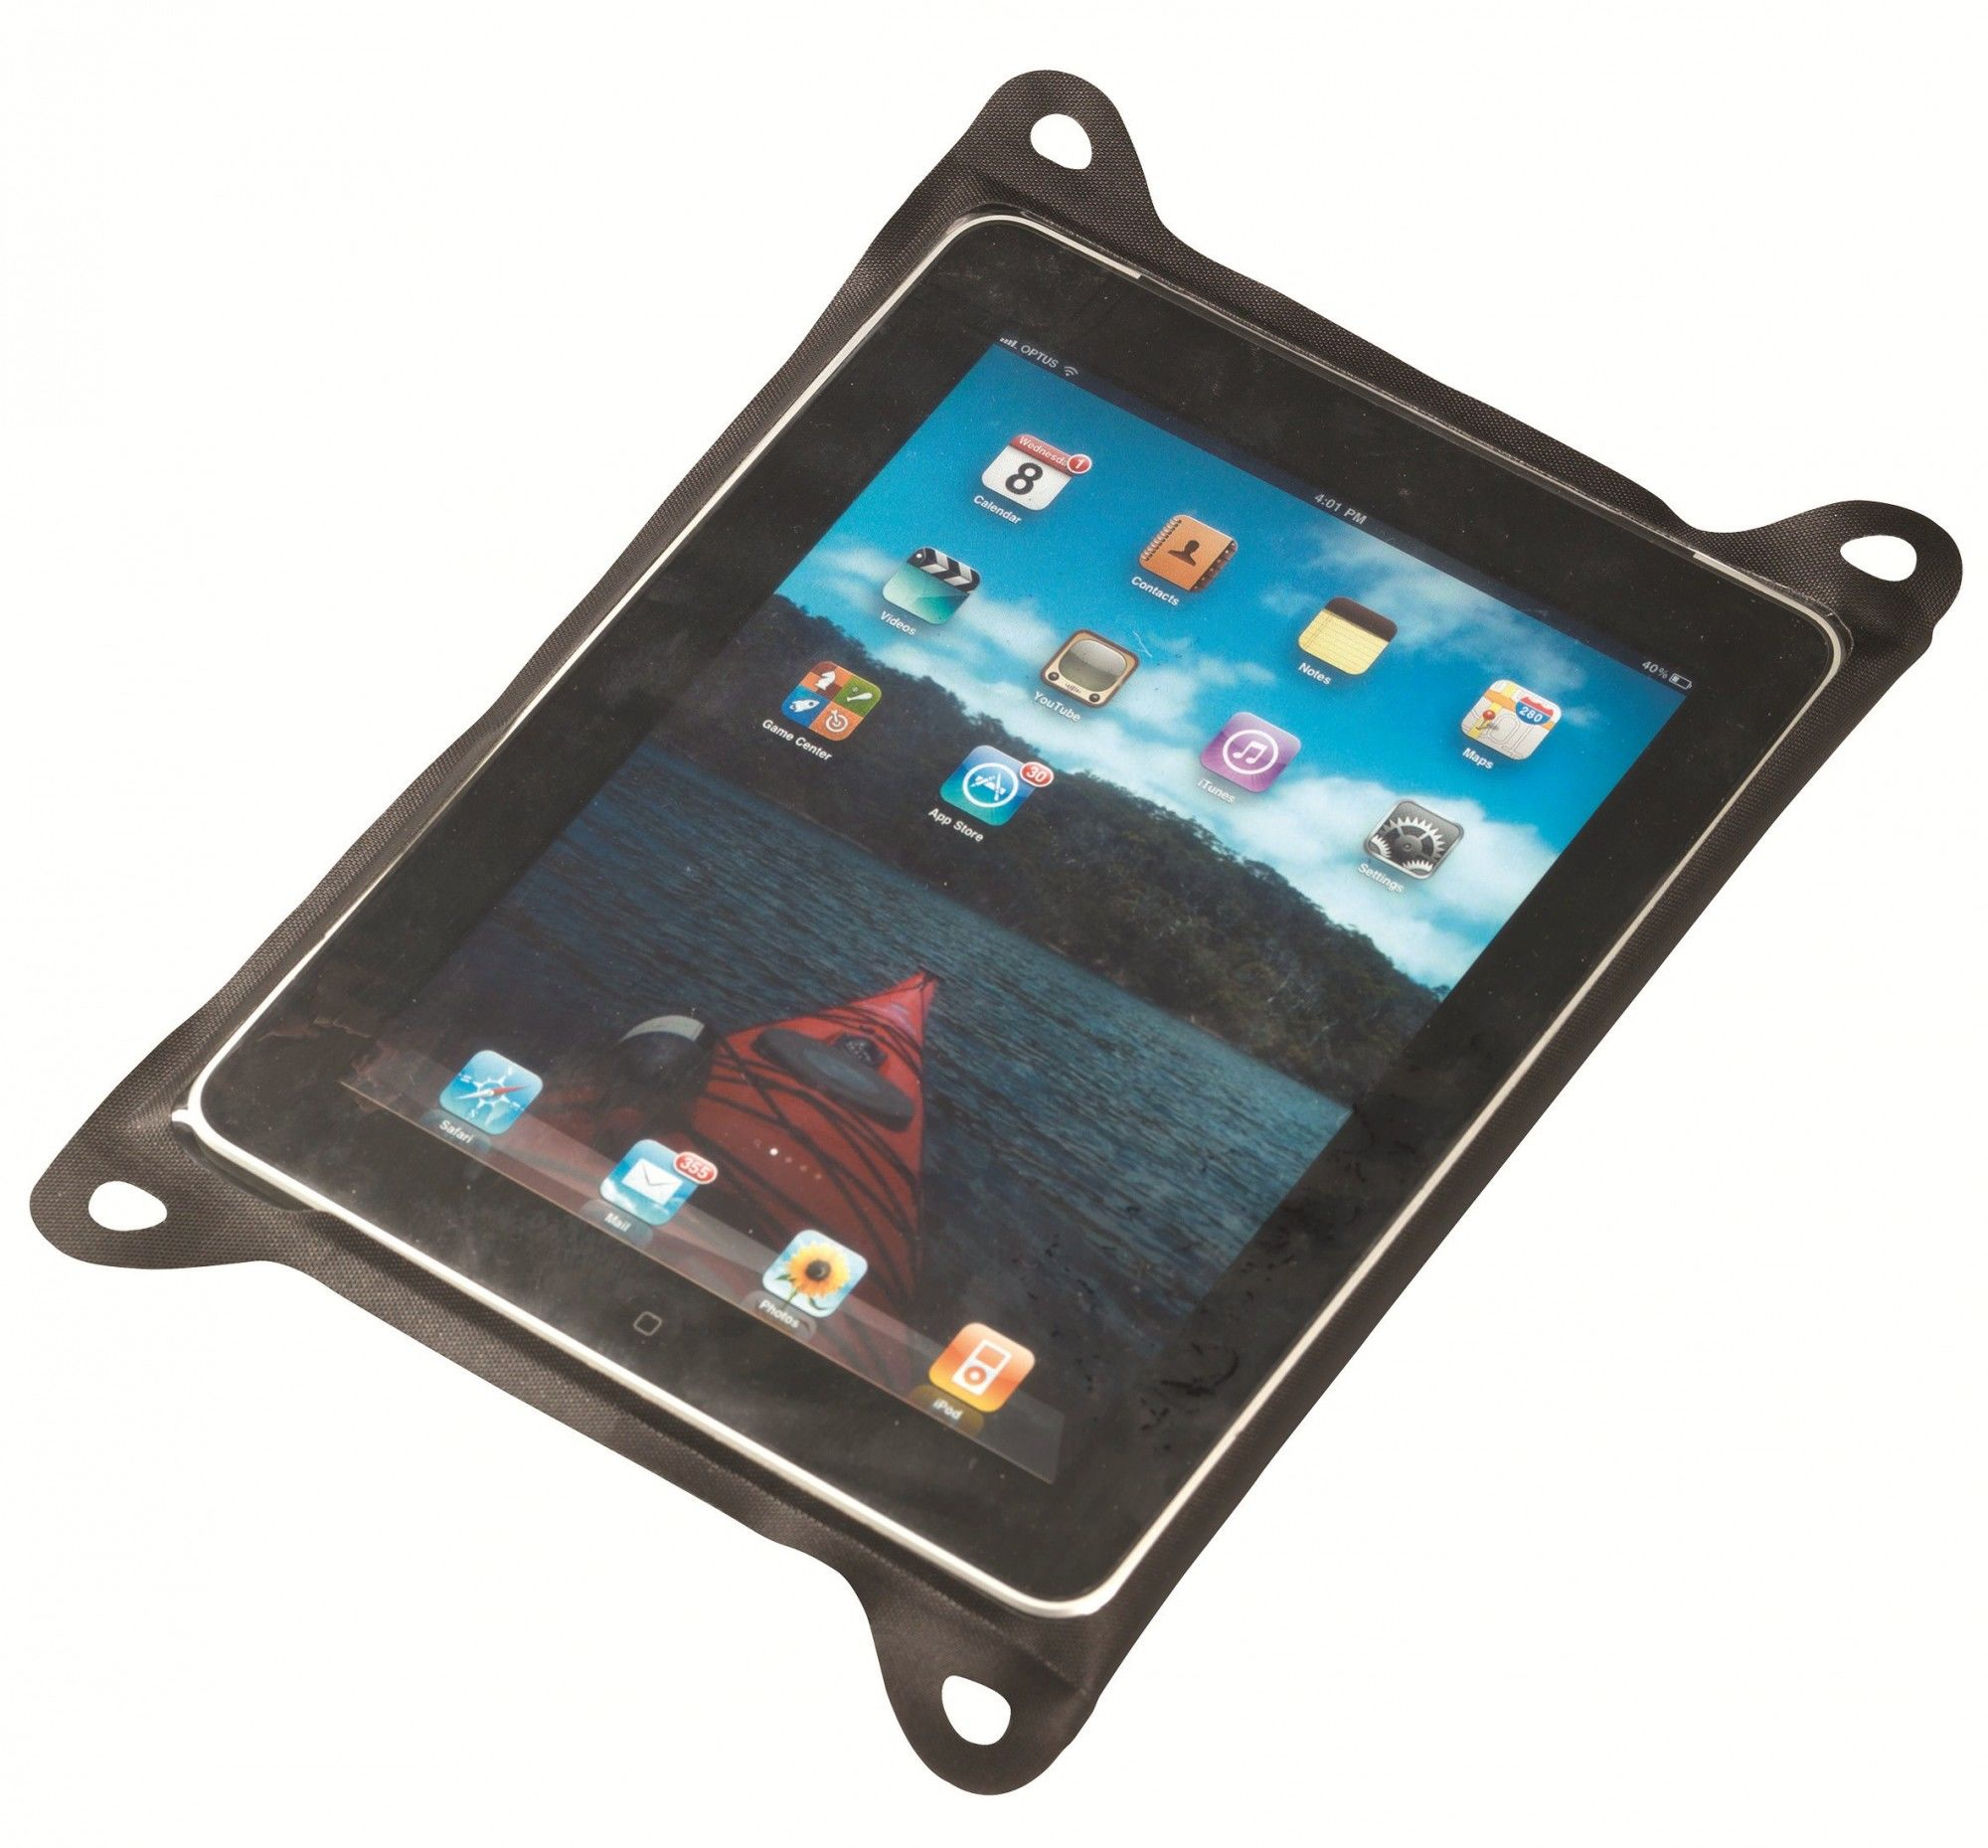 Sea to Summit TPU Case for Large Tablets | Größe One Size |  Sonstige Taschen